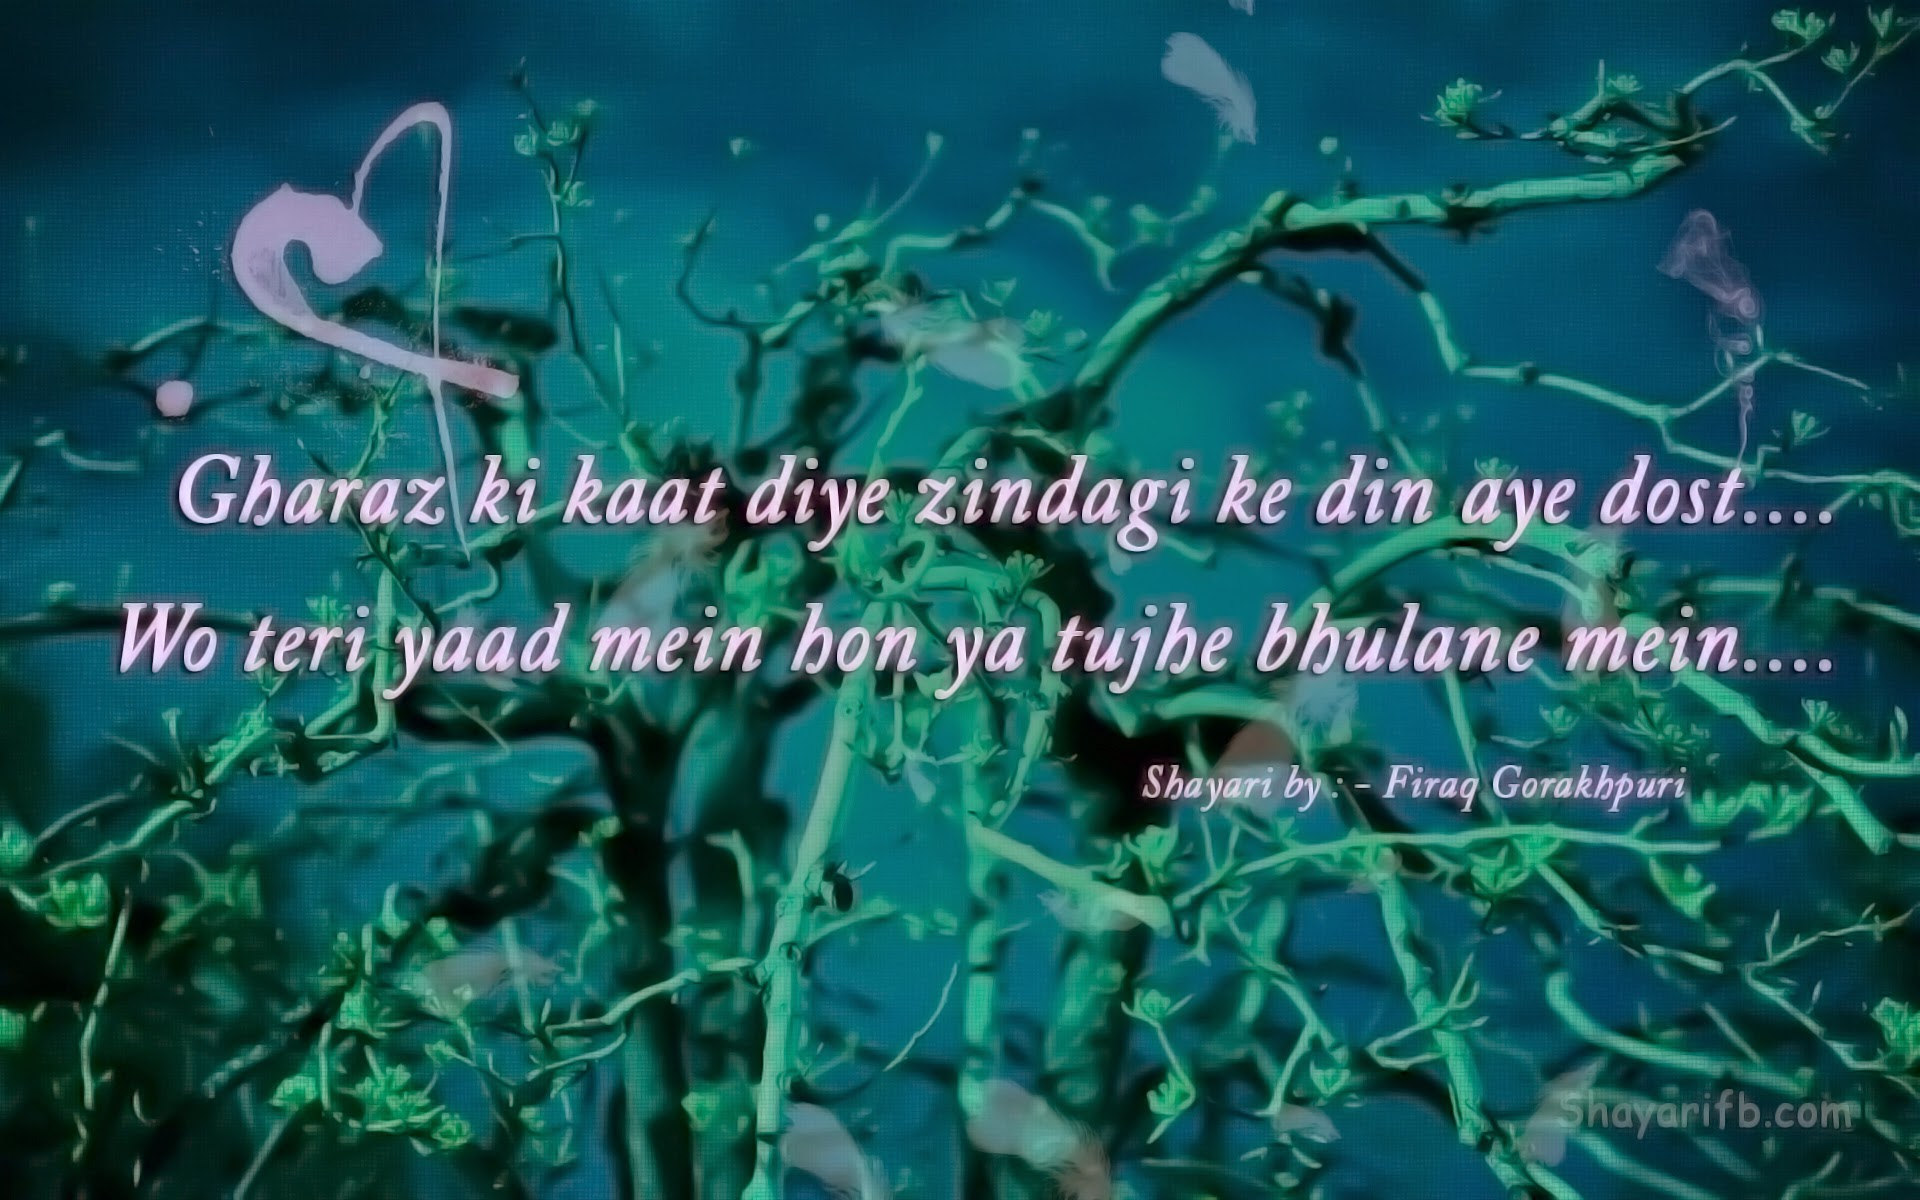 Letest Sad Boy Shayari Pictures Full Hd Wallpapers Ou Can: Sad Shayari Full Hd Wallpaper